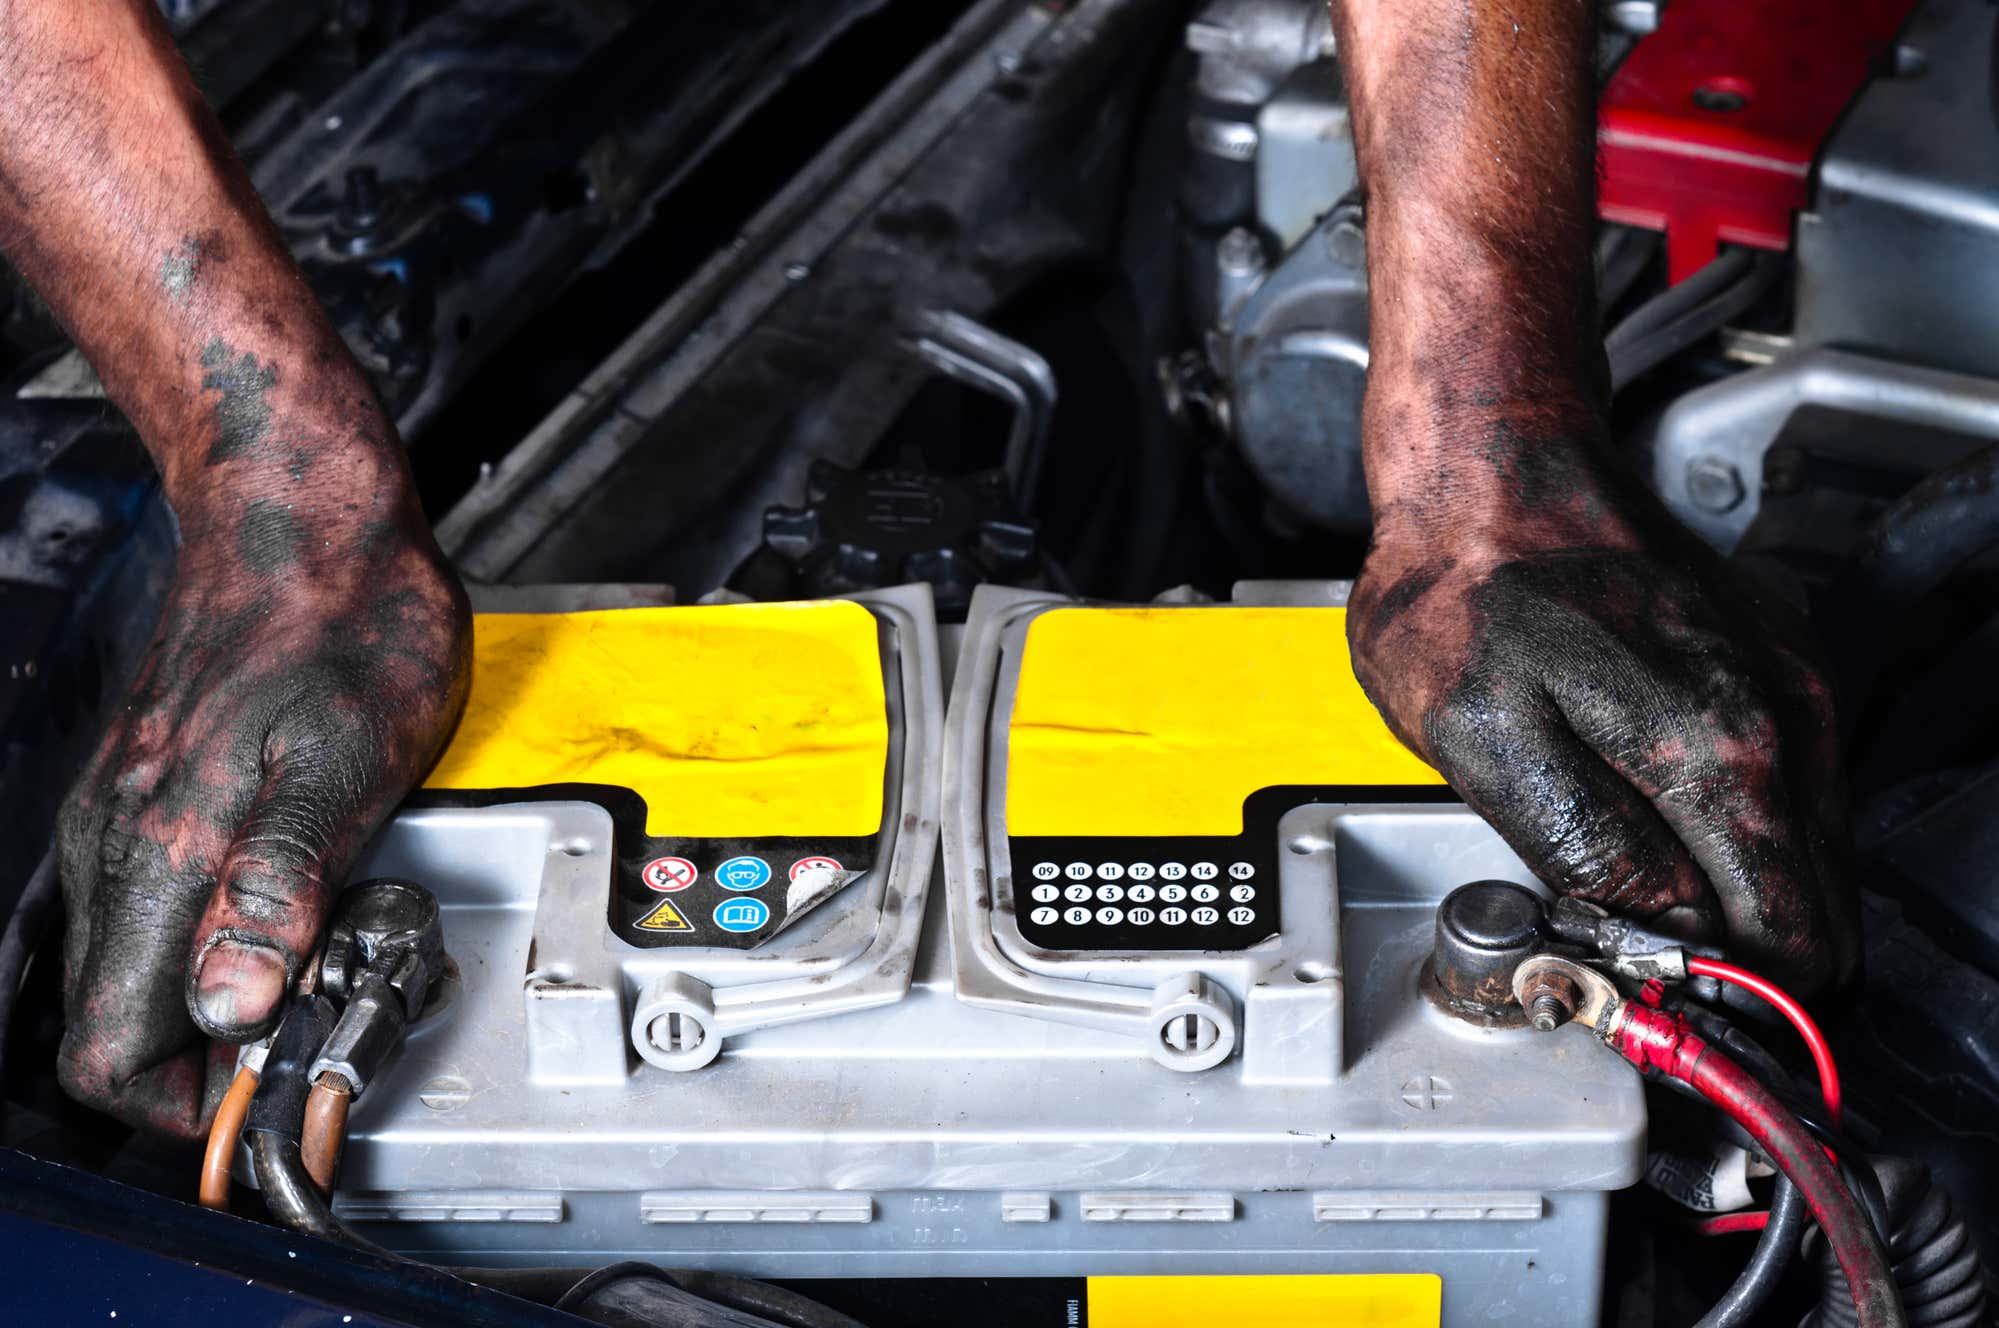 Dirty hands grip a battery in the engine bay.